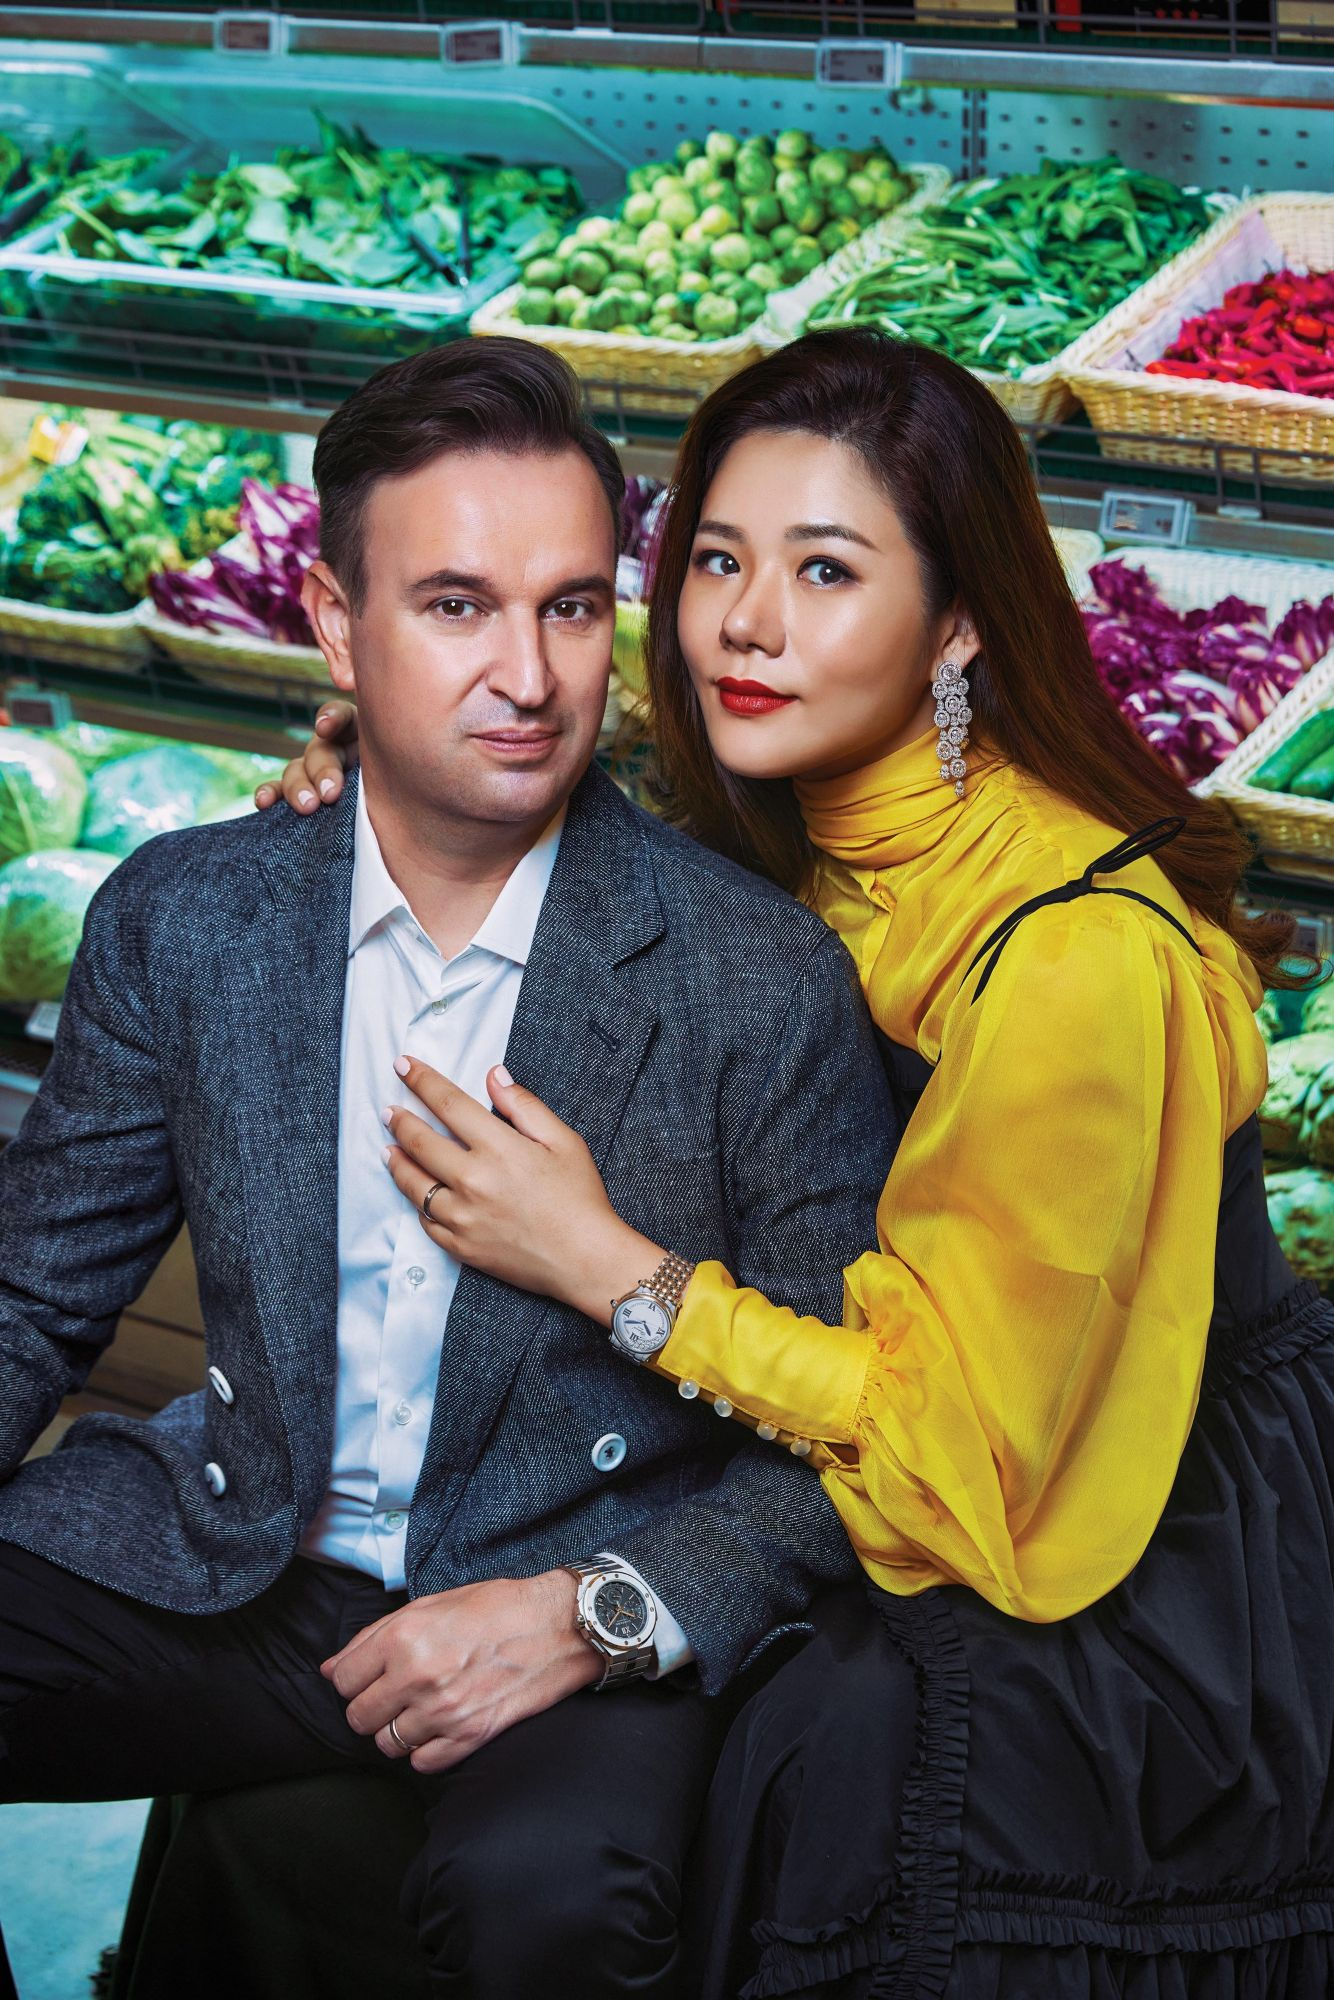 Meet Singapore's Culinary Power Couple: Les Amis Executive Chef Sebastien Lepinoy and Olivia Lee